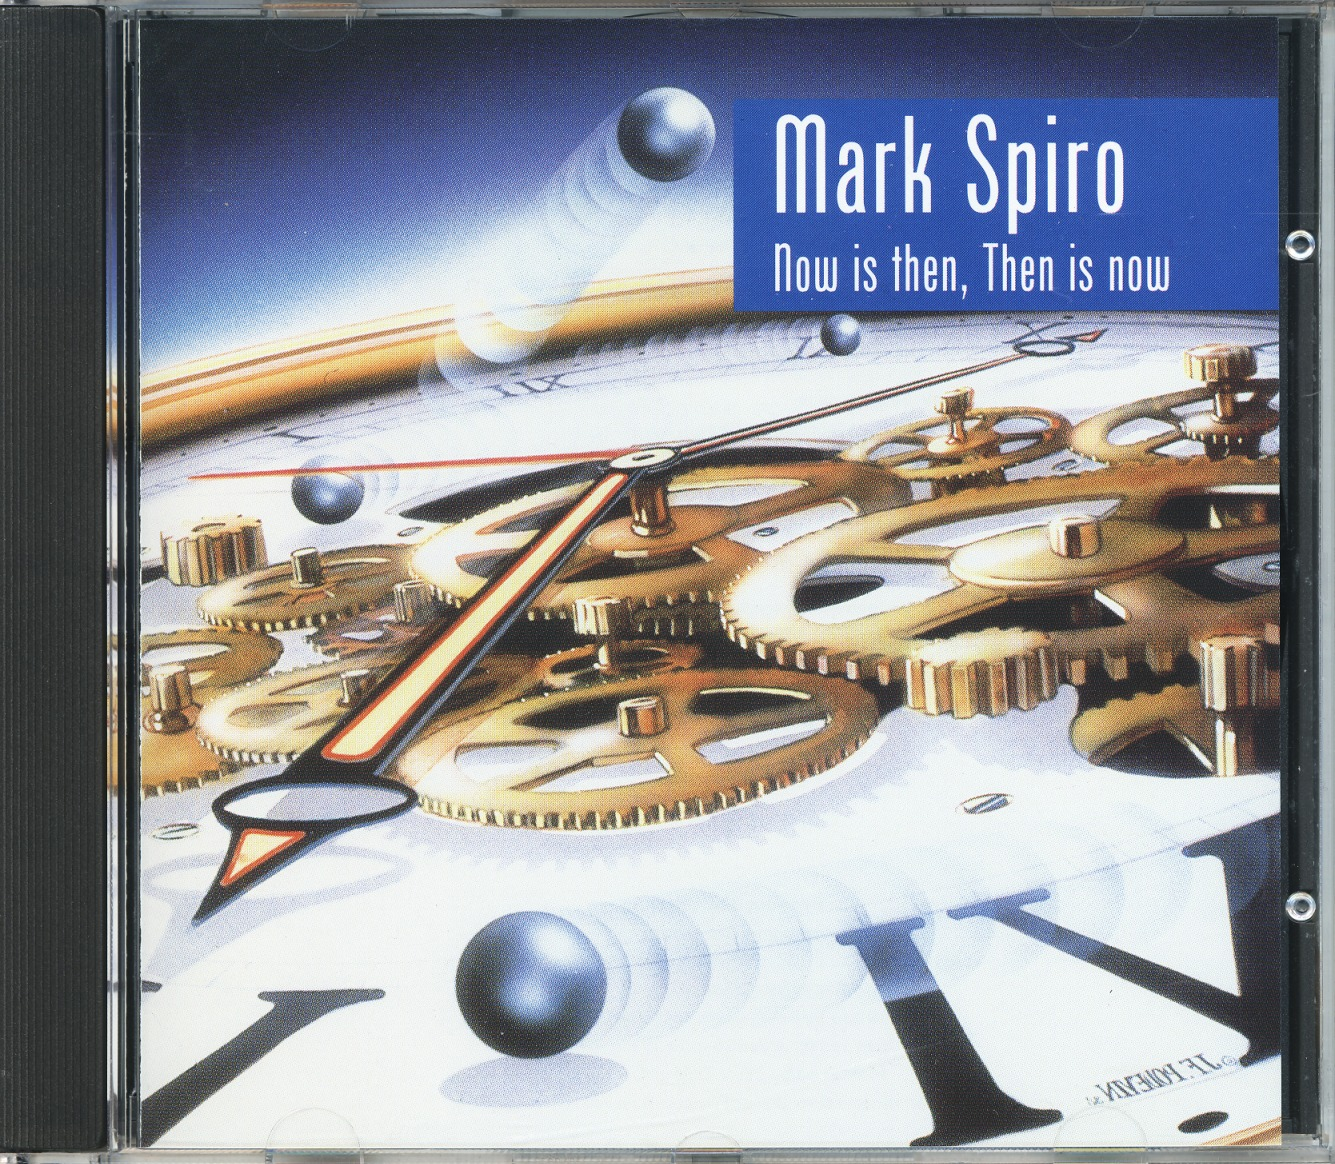 MARK SPIRO/NOW IS THEN, THEN IS NOW (USED)